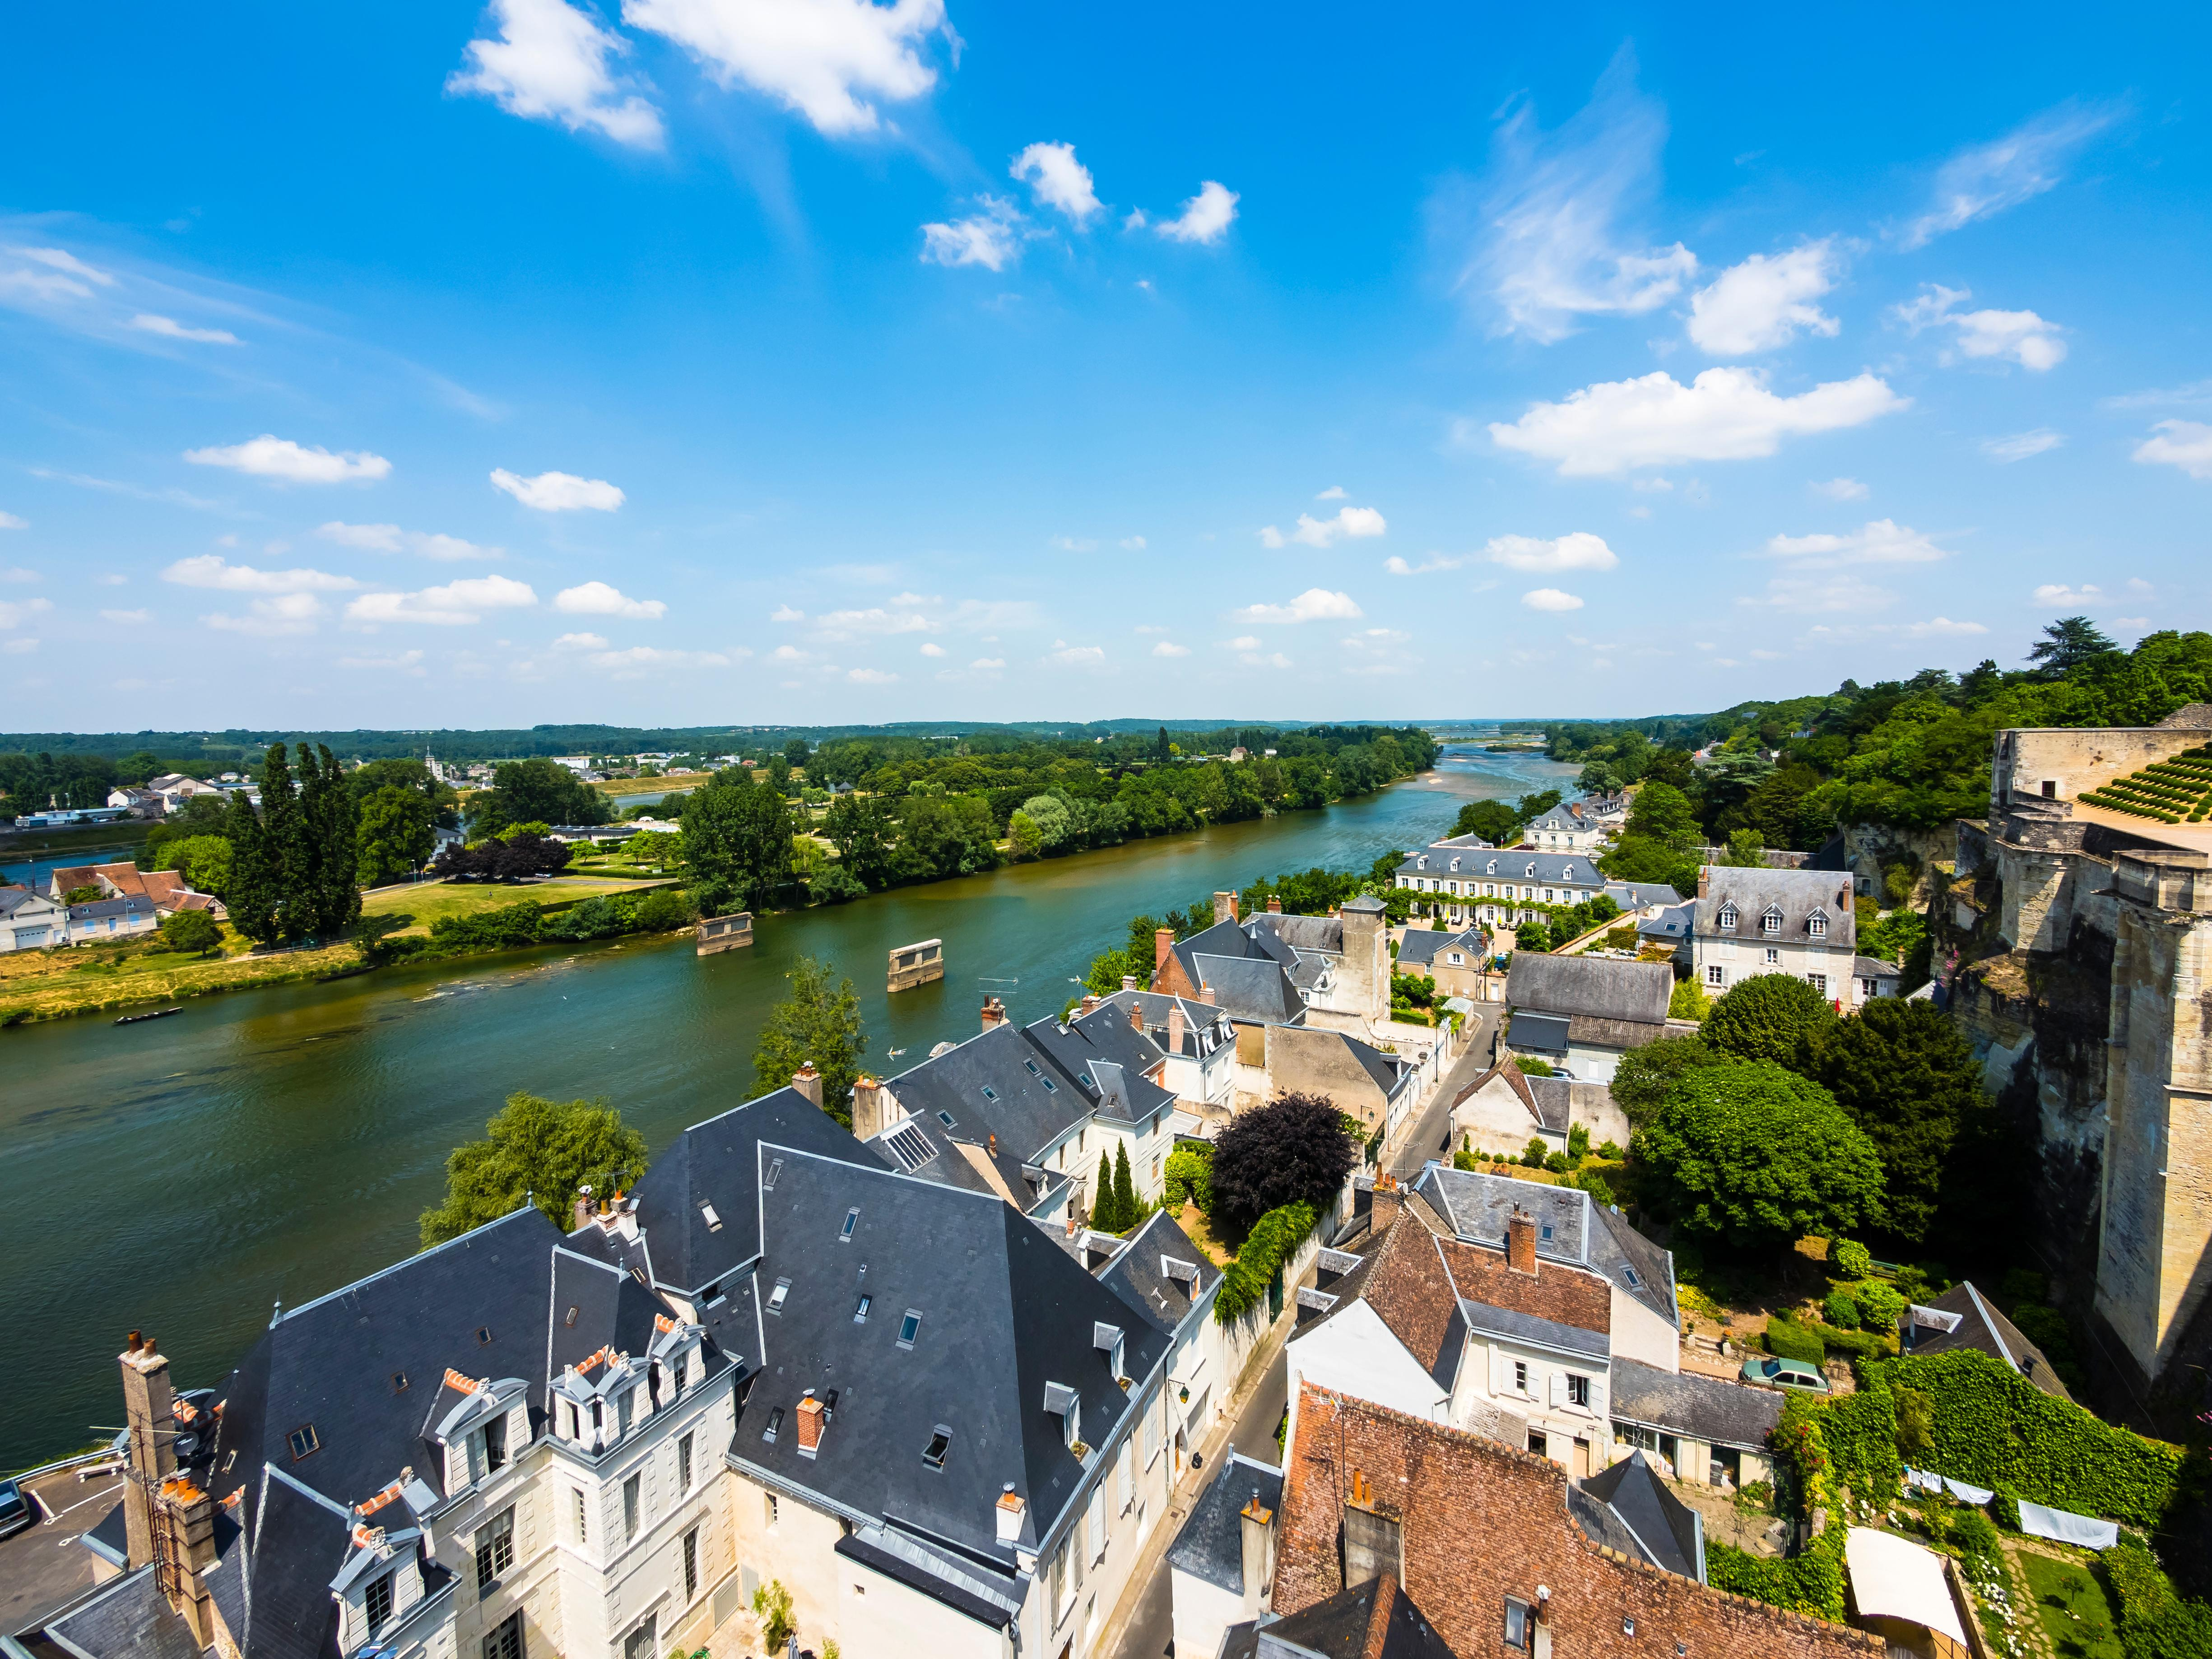 Chambre D Hote Amboise Hotels In Amboise Find Cheap Amboise Hotels With Momondo